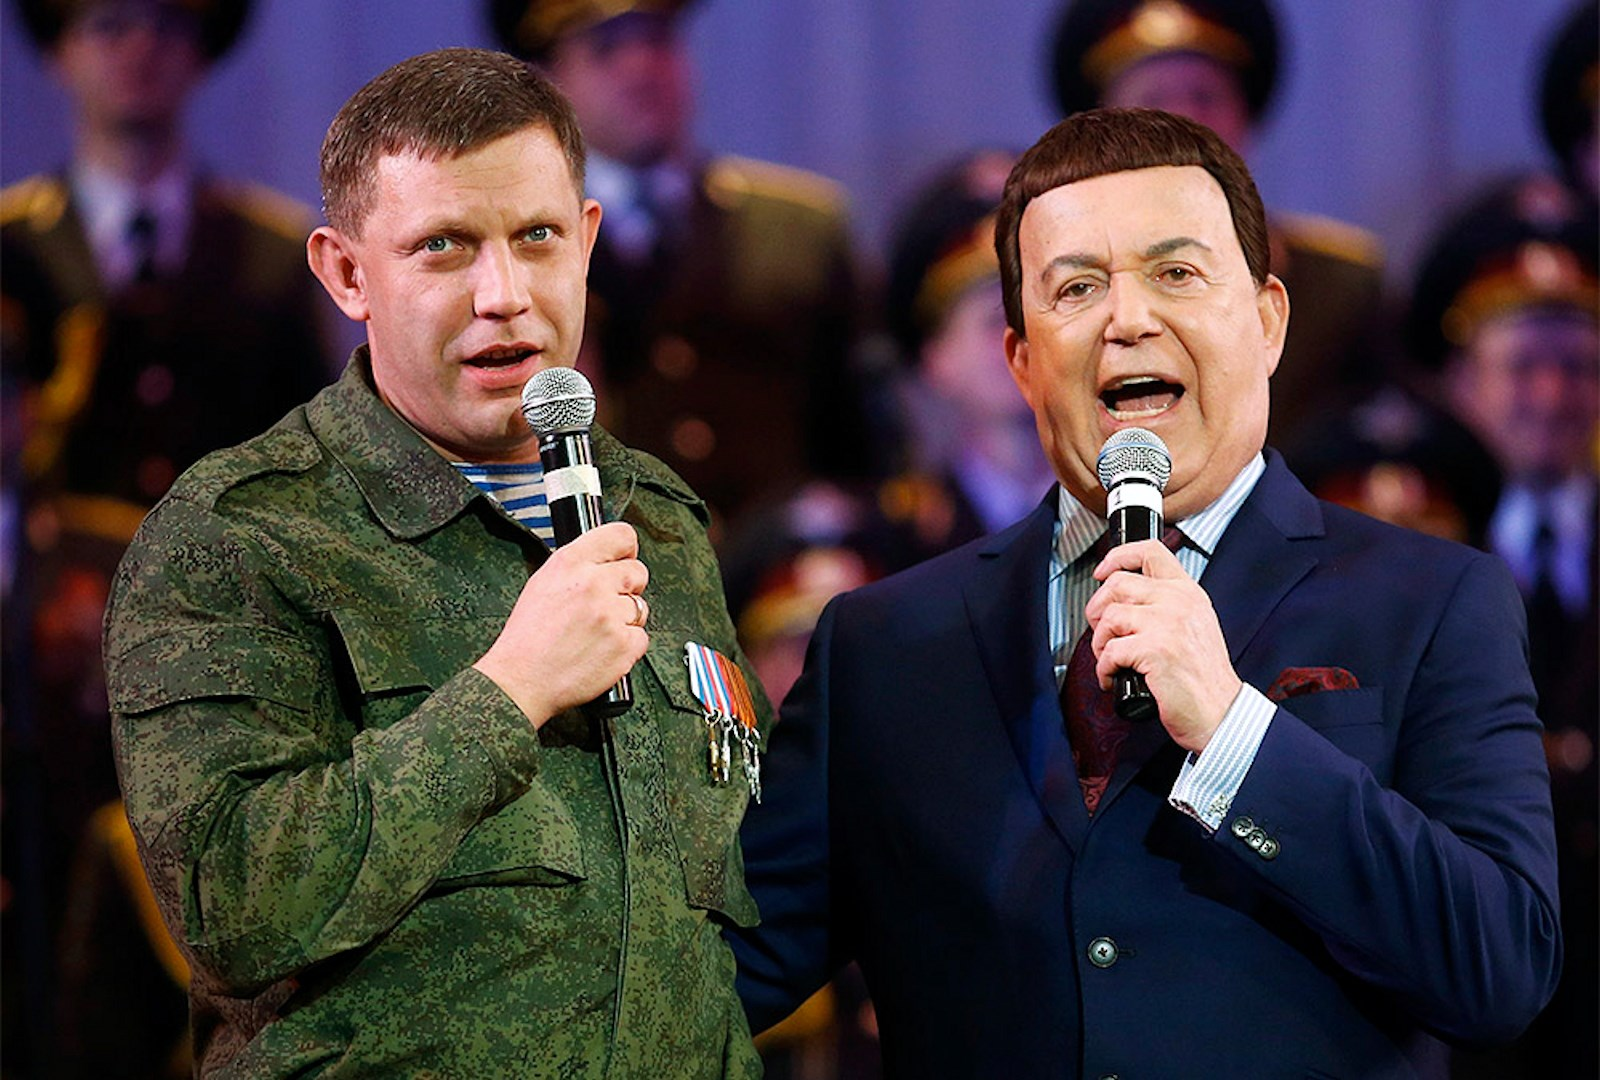 00 zakharchenko and kobzon. 21.04.15